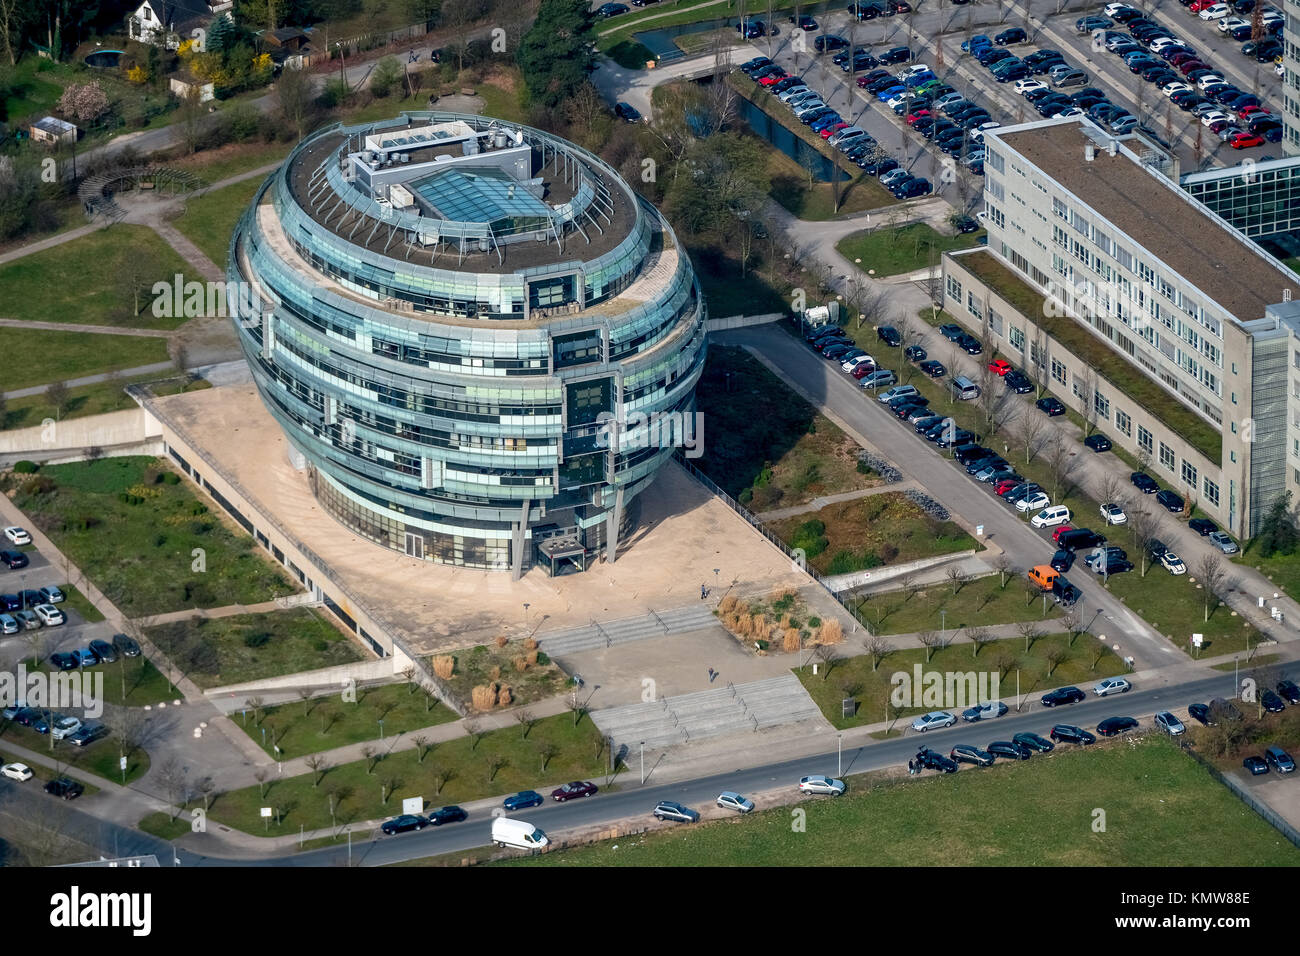 Office tower Heise headquarters in Hanover in spherical form, Heise Medien GmbH & Co KG, Heise Media Service - Stock Image